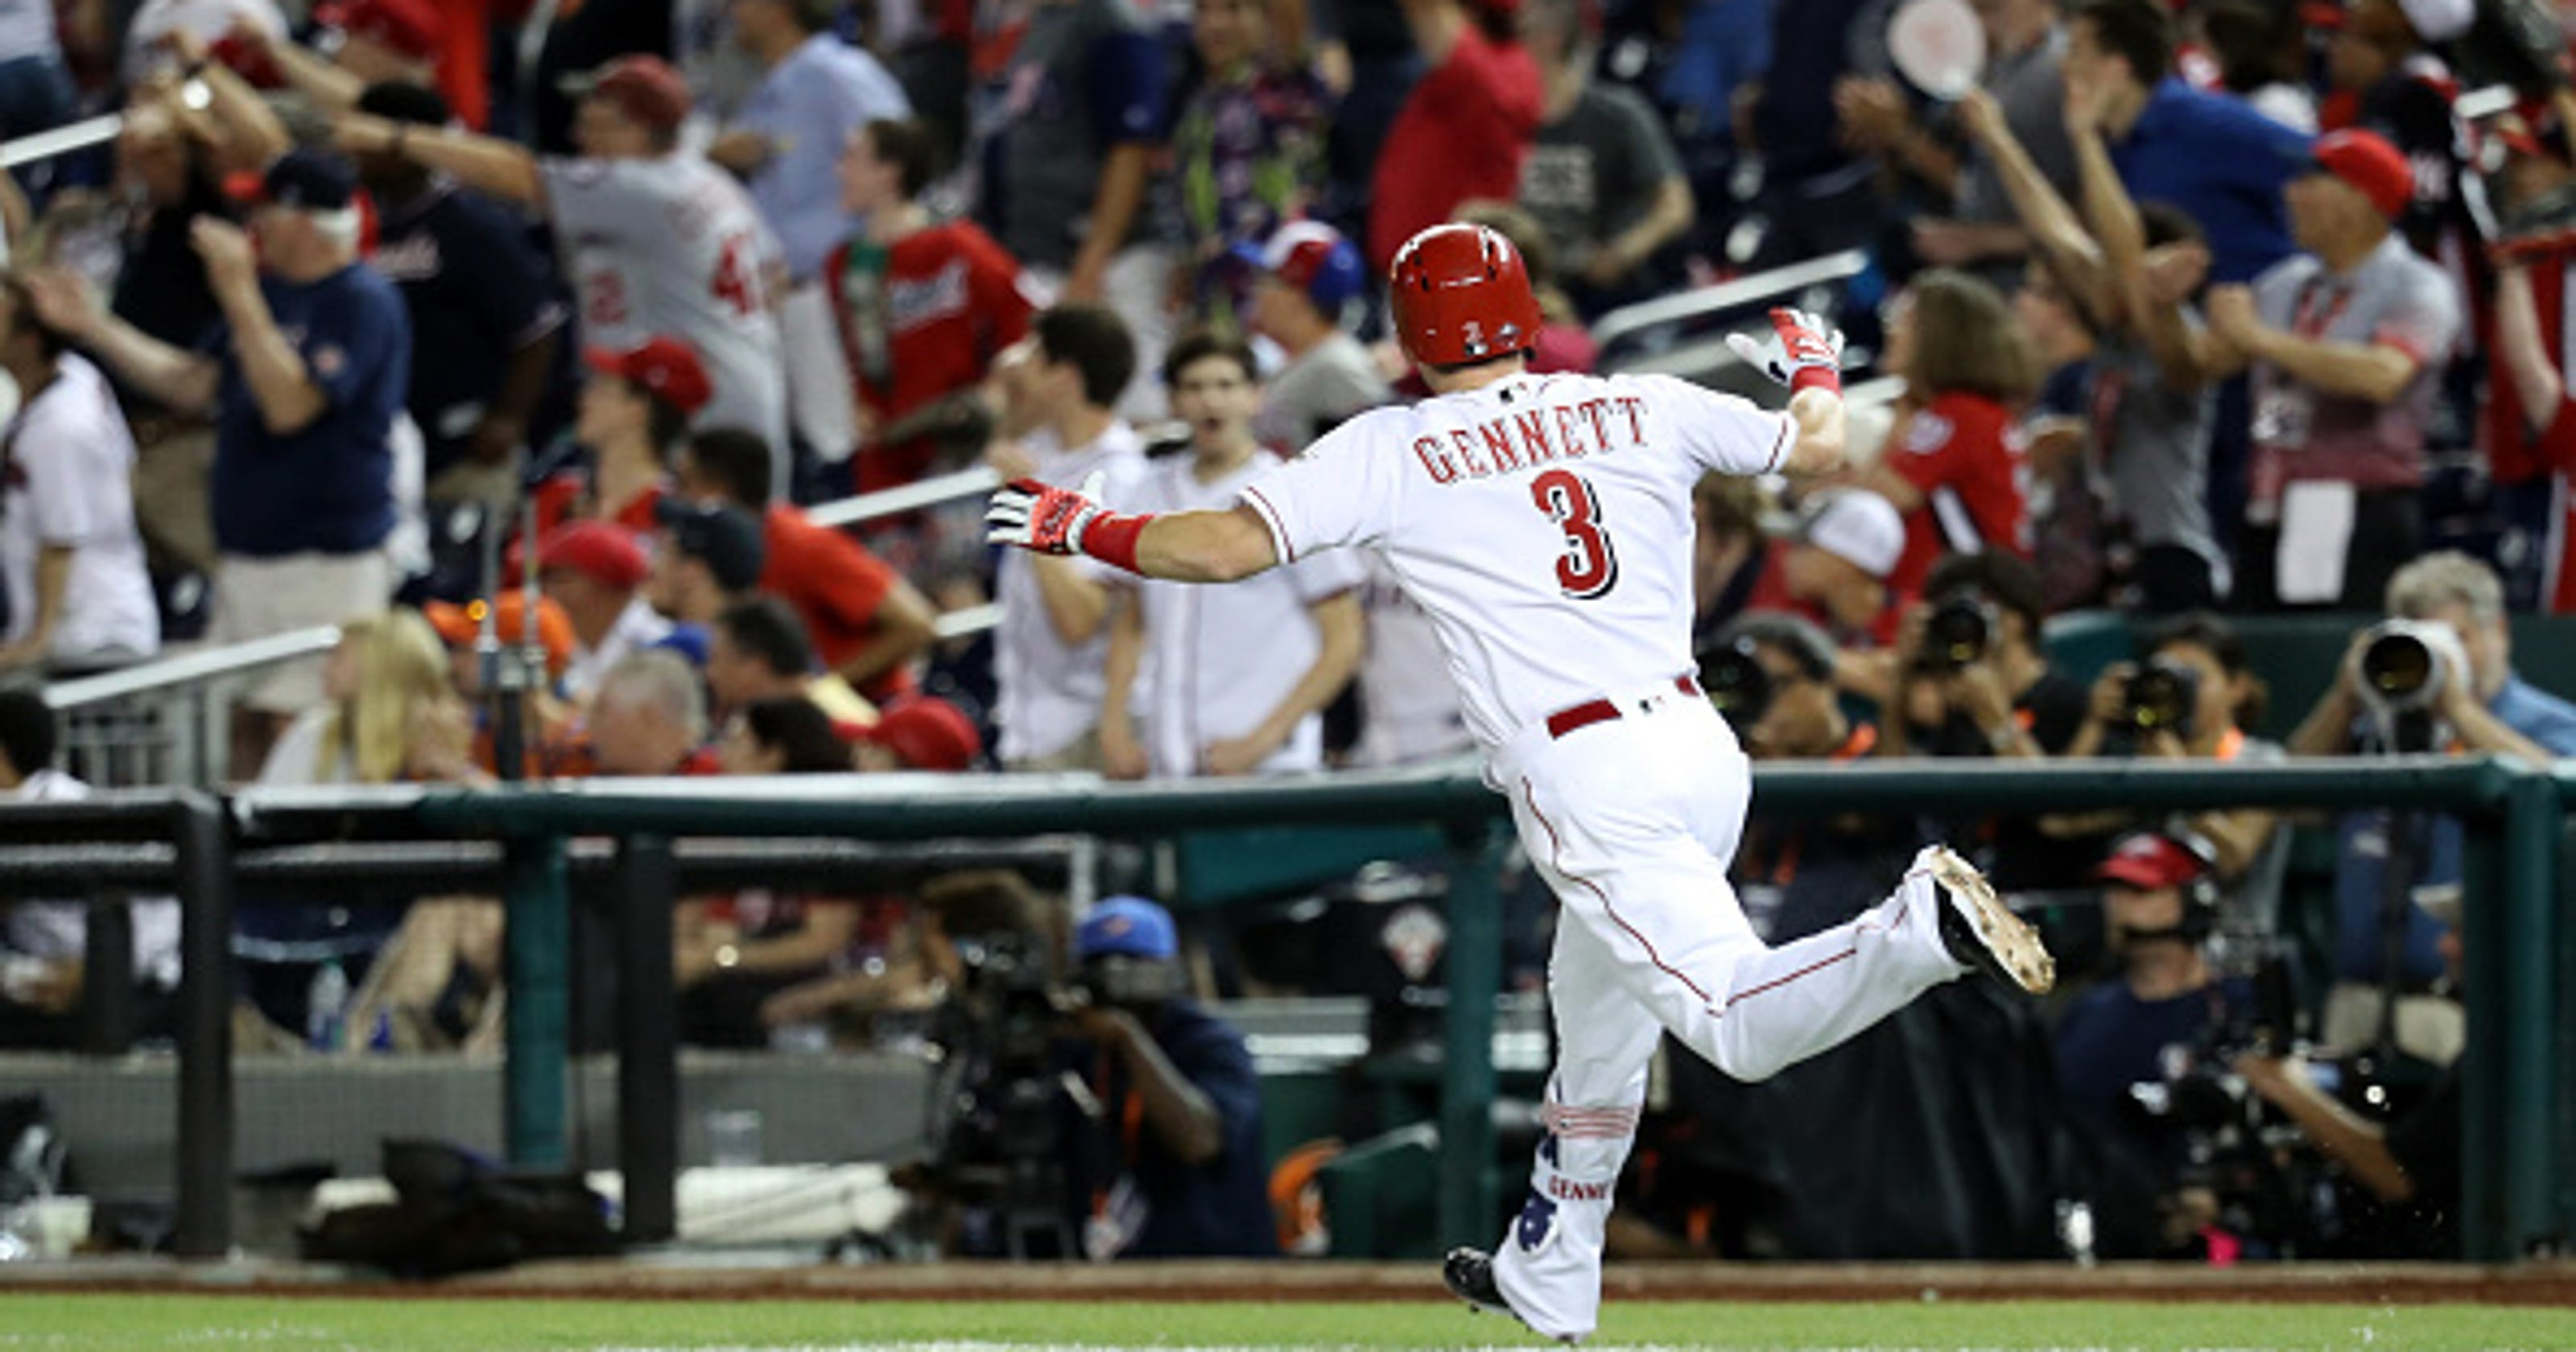 bf06dbf81 Reactions  Scooter Gennett ties All-Star Game with pinch-hit home run in  bottom of 9th